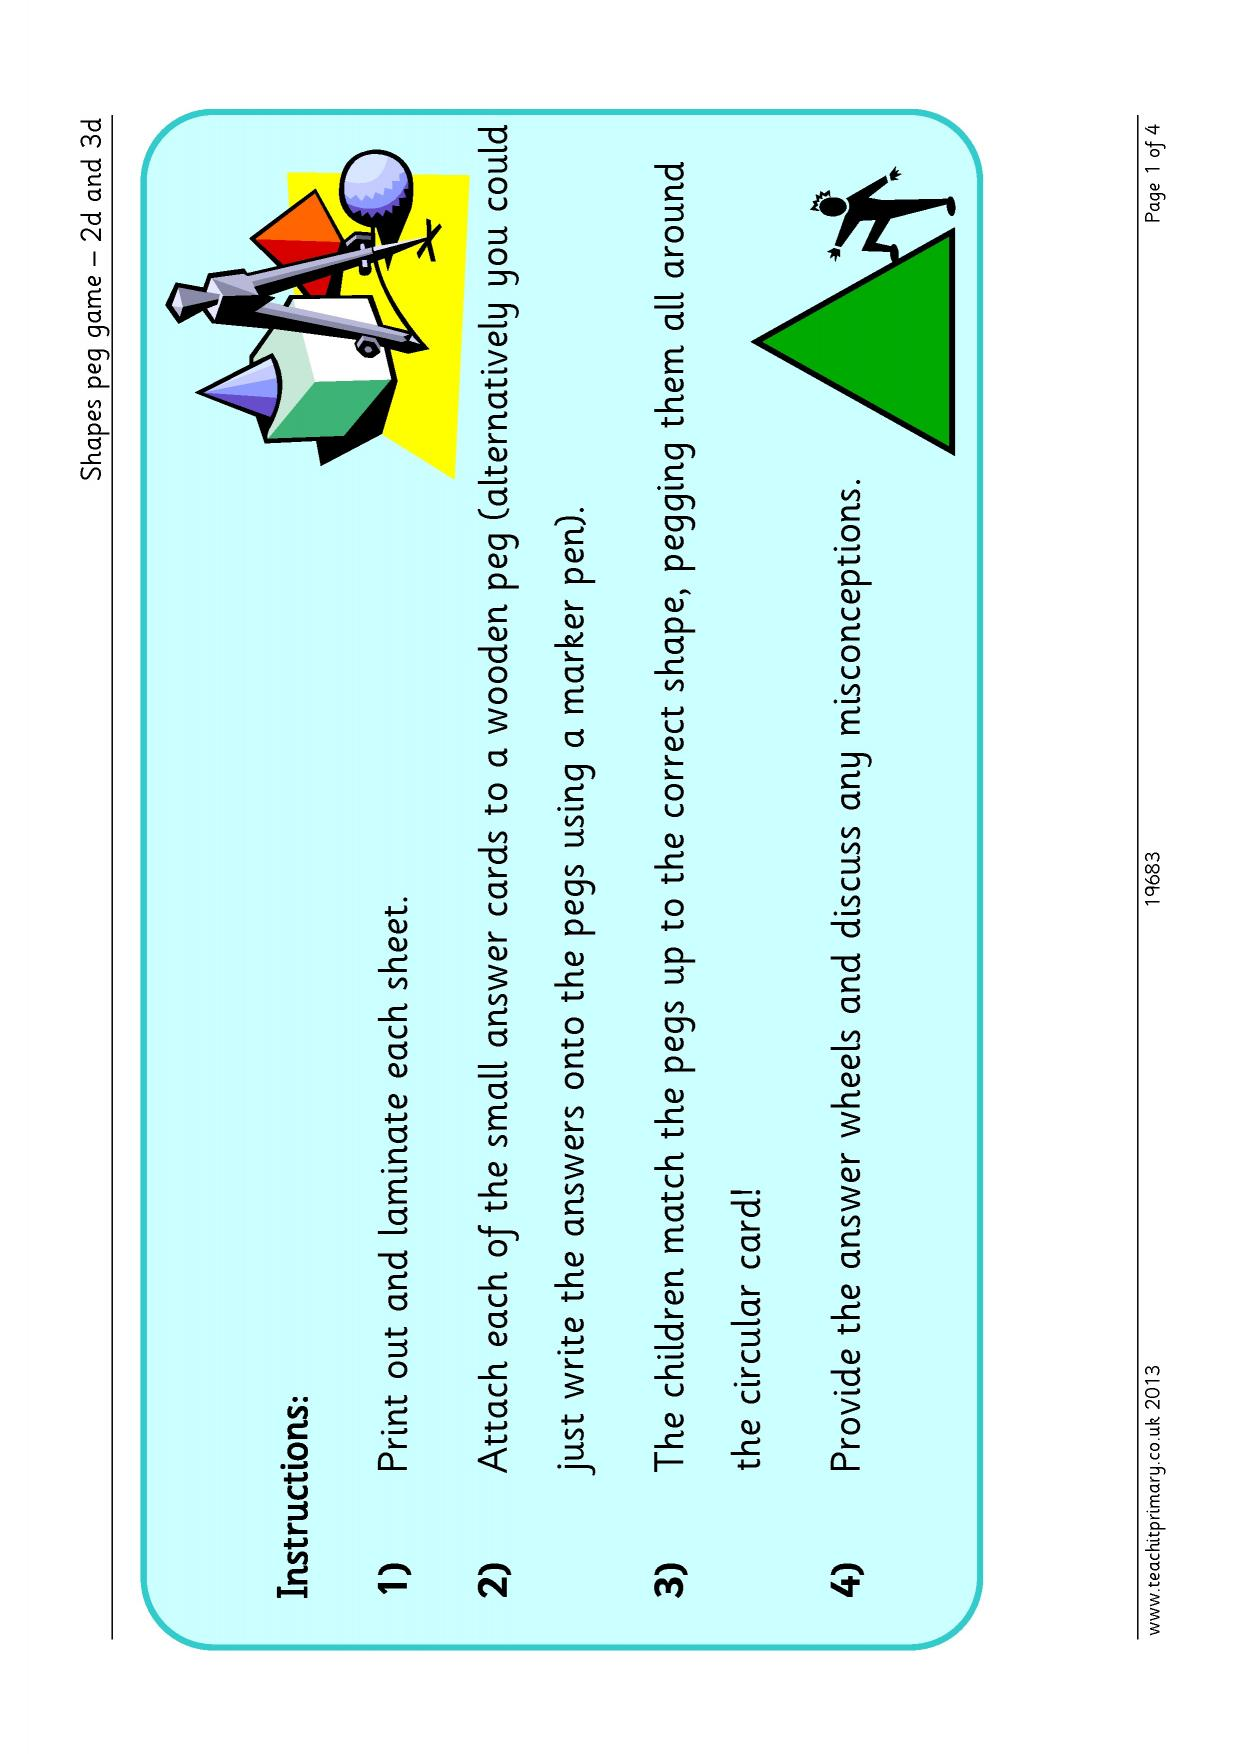 KS2 | Properties of shapes – recognizing, naming and describing ...